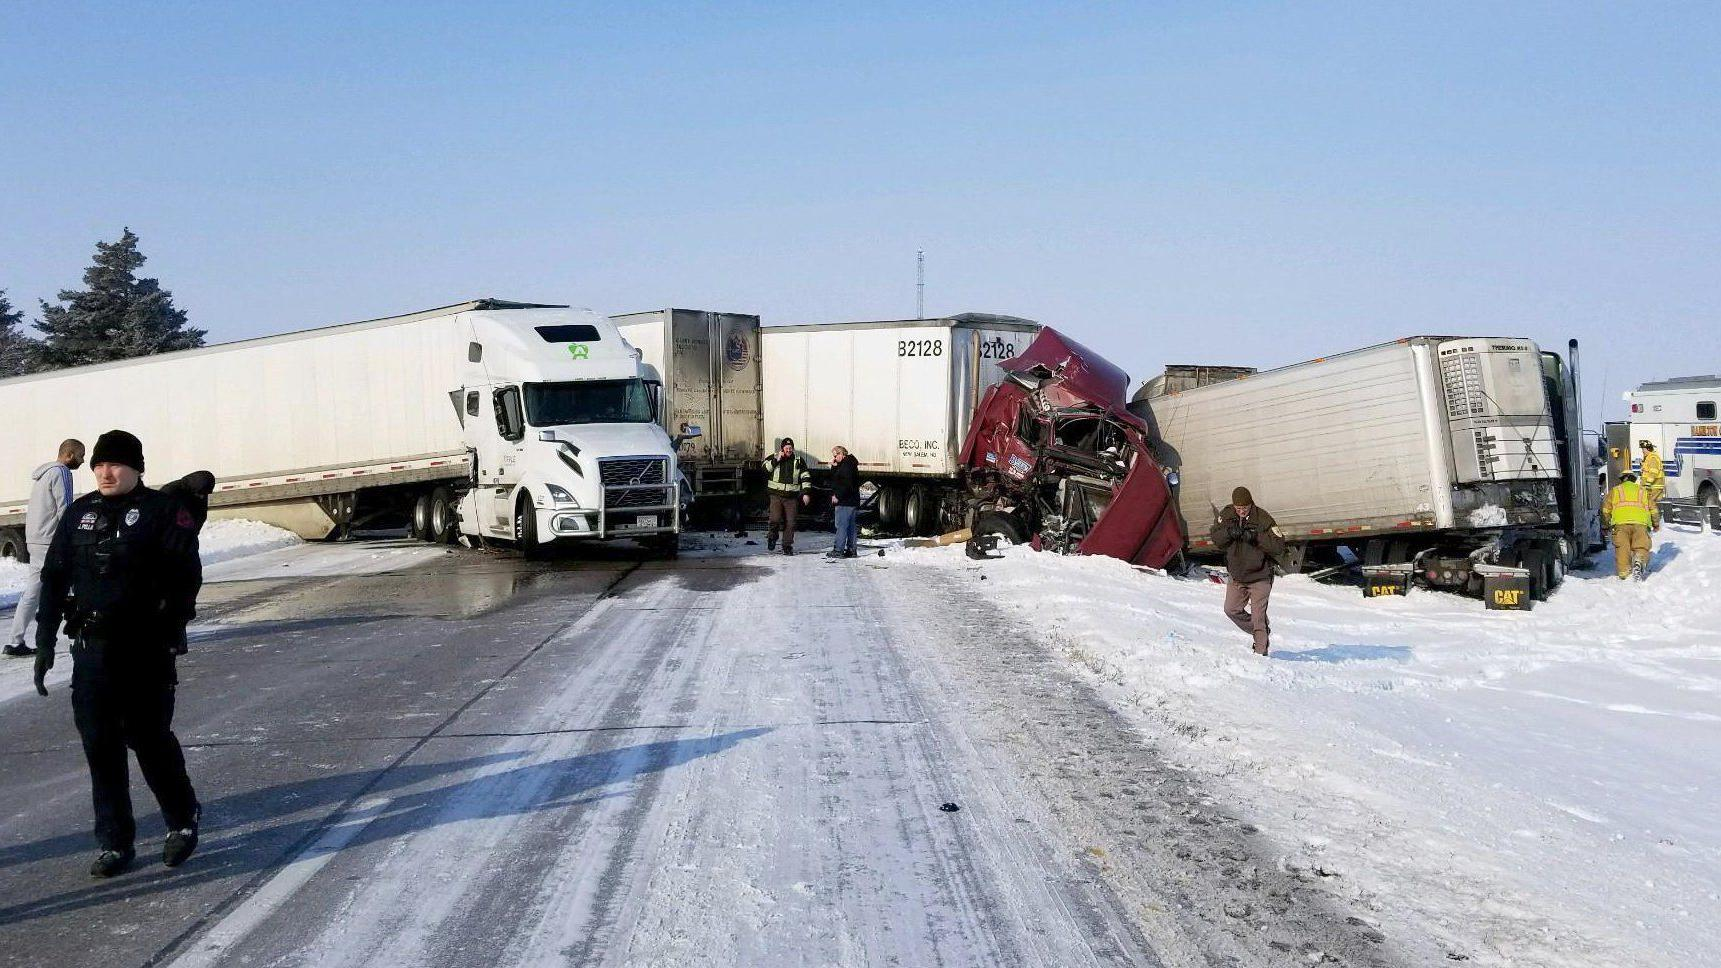 Indiana man dies after Wednesday pileup on I-80 involving 11 vehicles | Public Safety